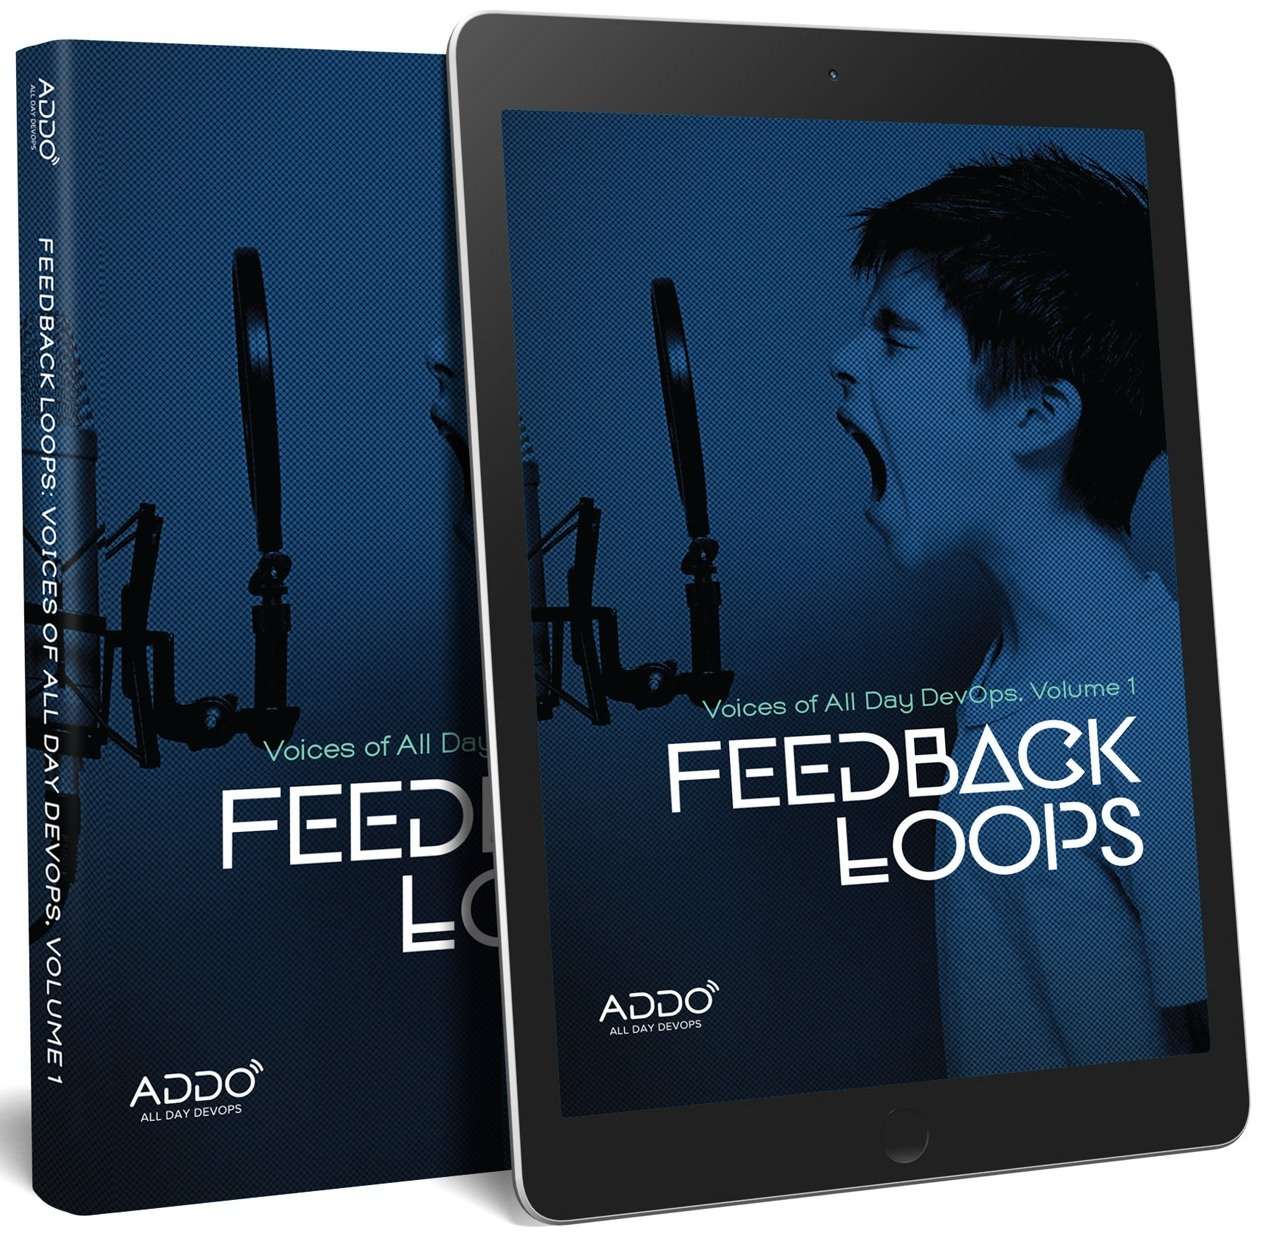 Feedback Loops: Voices of All Day DevOps, Volume 1